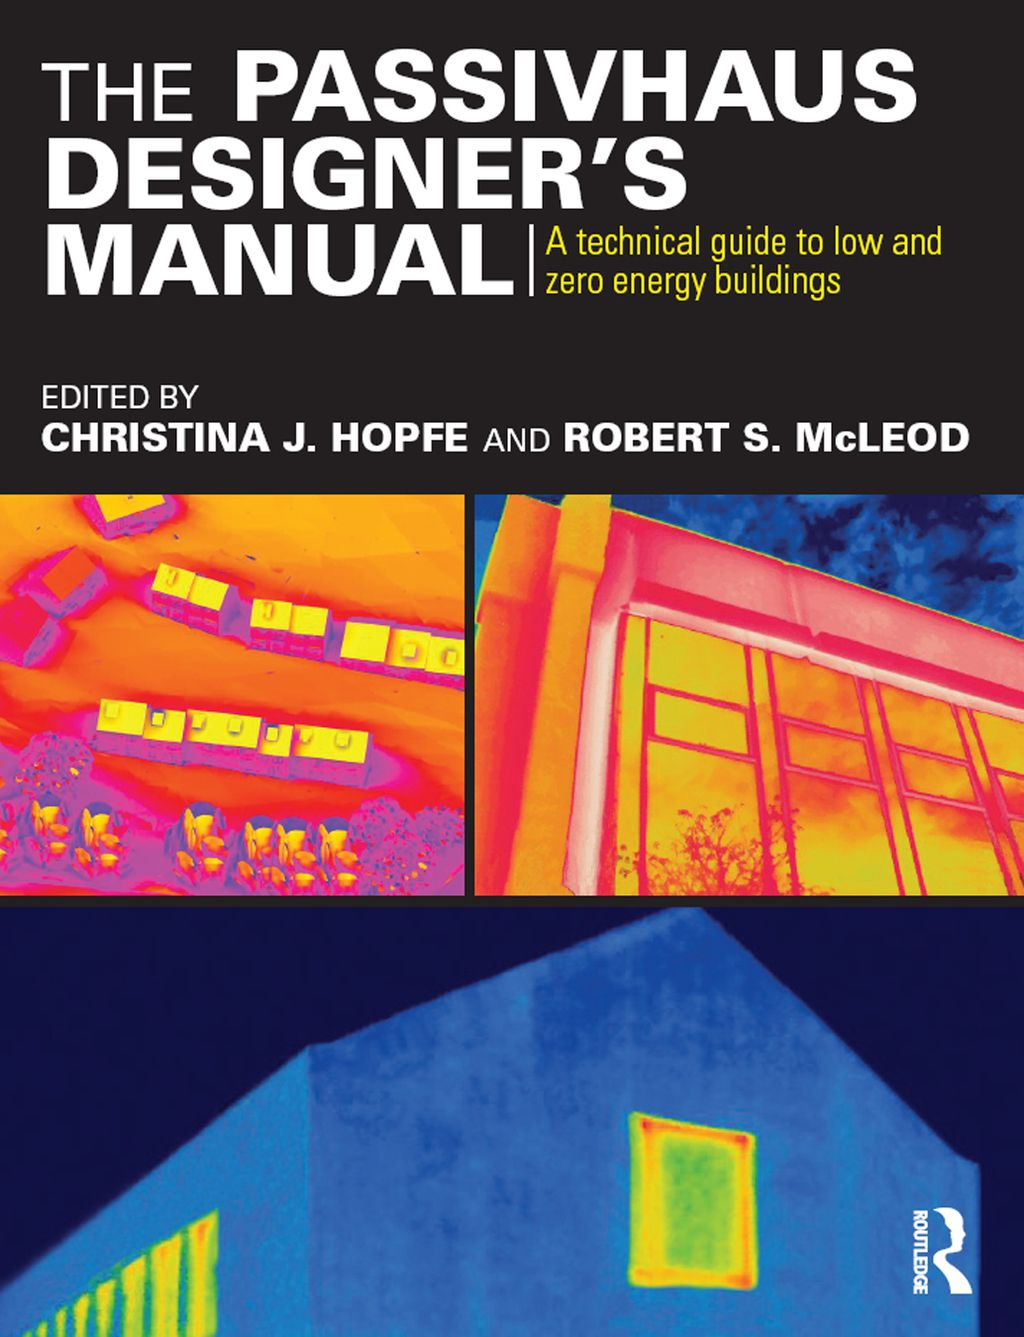 The Passivhaus Designer's Manual (eBook Rental) in 2019